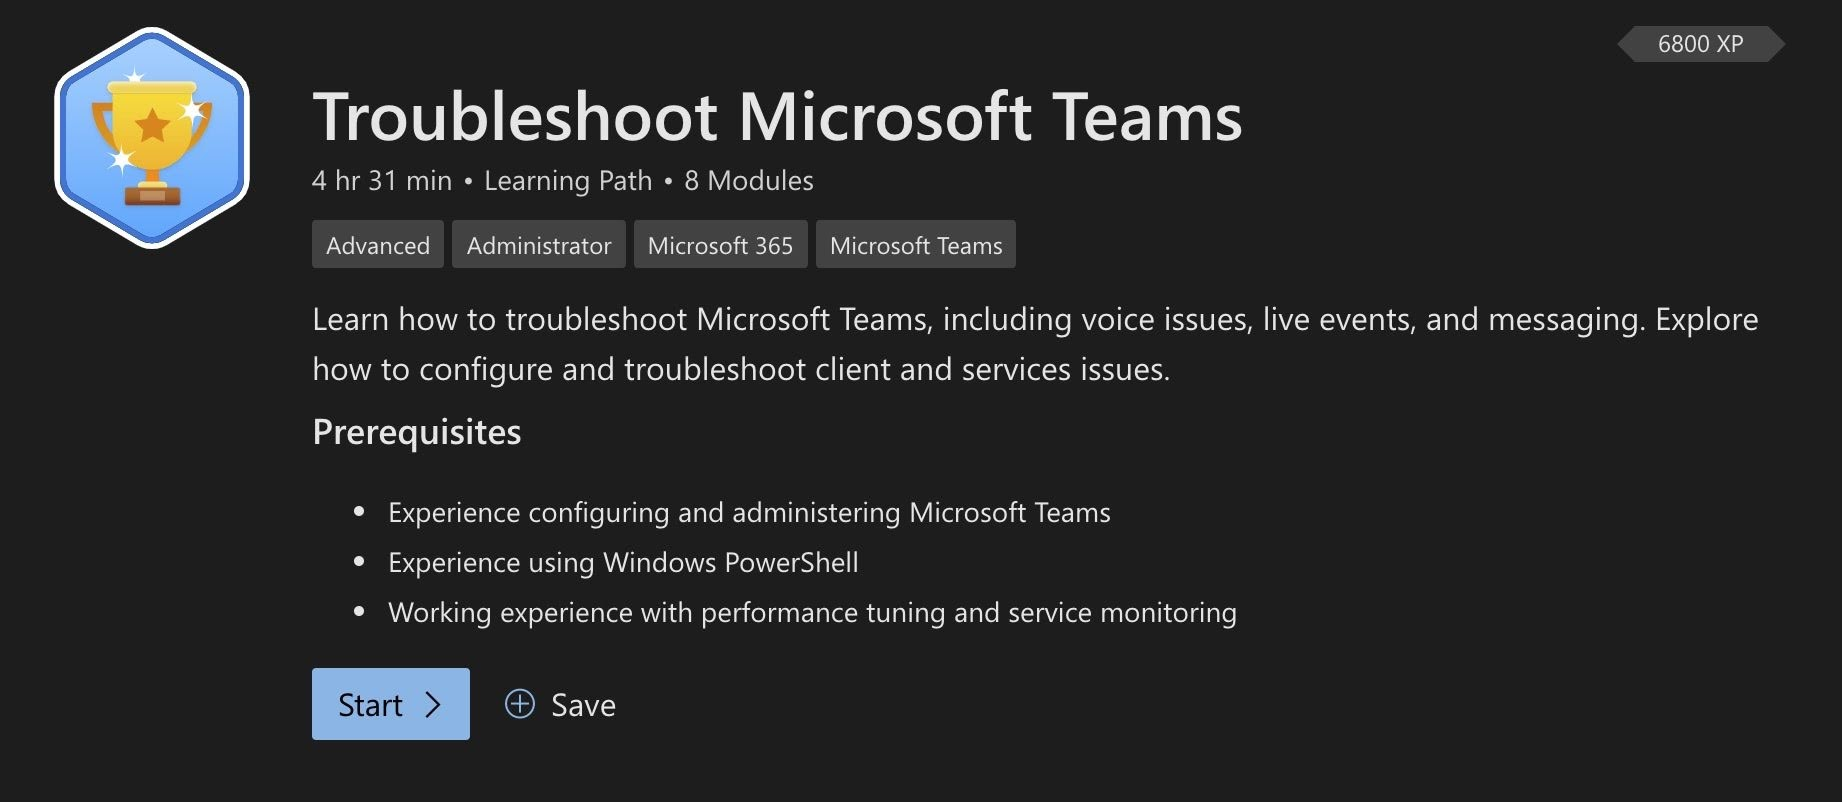 Troubleshoot Microsoft Teams Learning Path